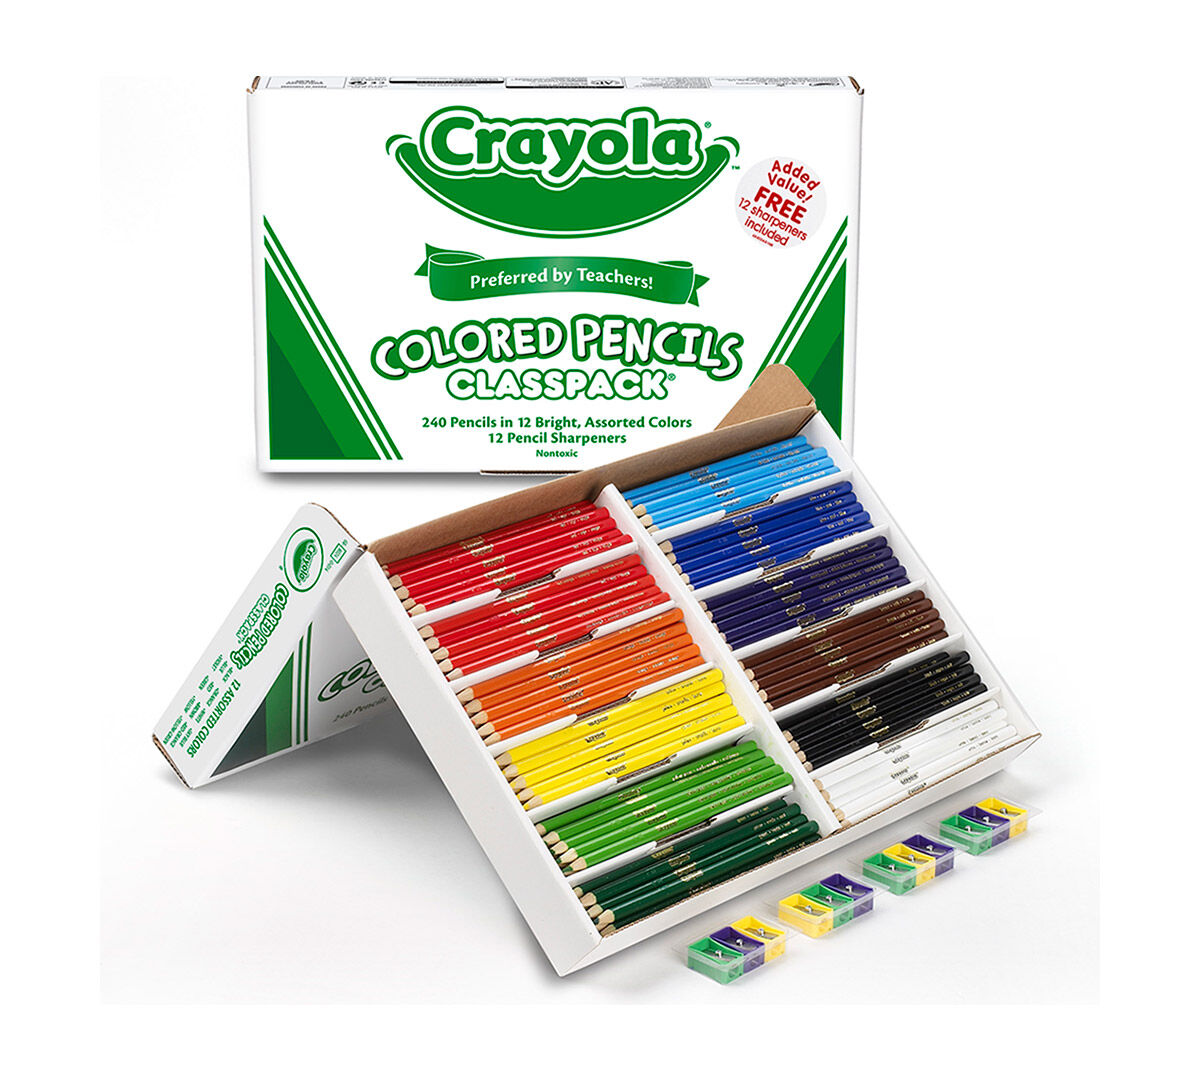 240 count colored pencils classpack 12 colors - Crayola Write Start Colored Pencils